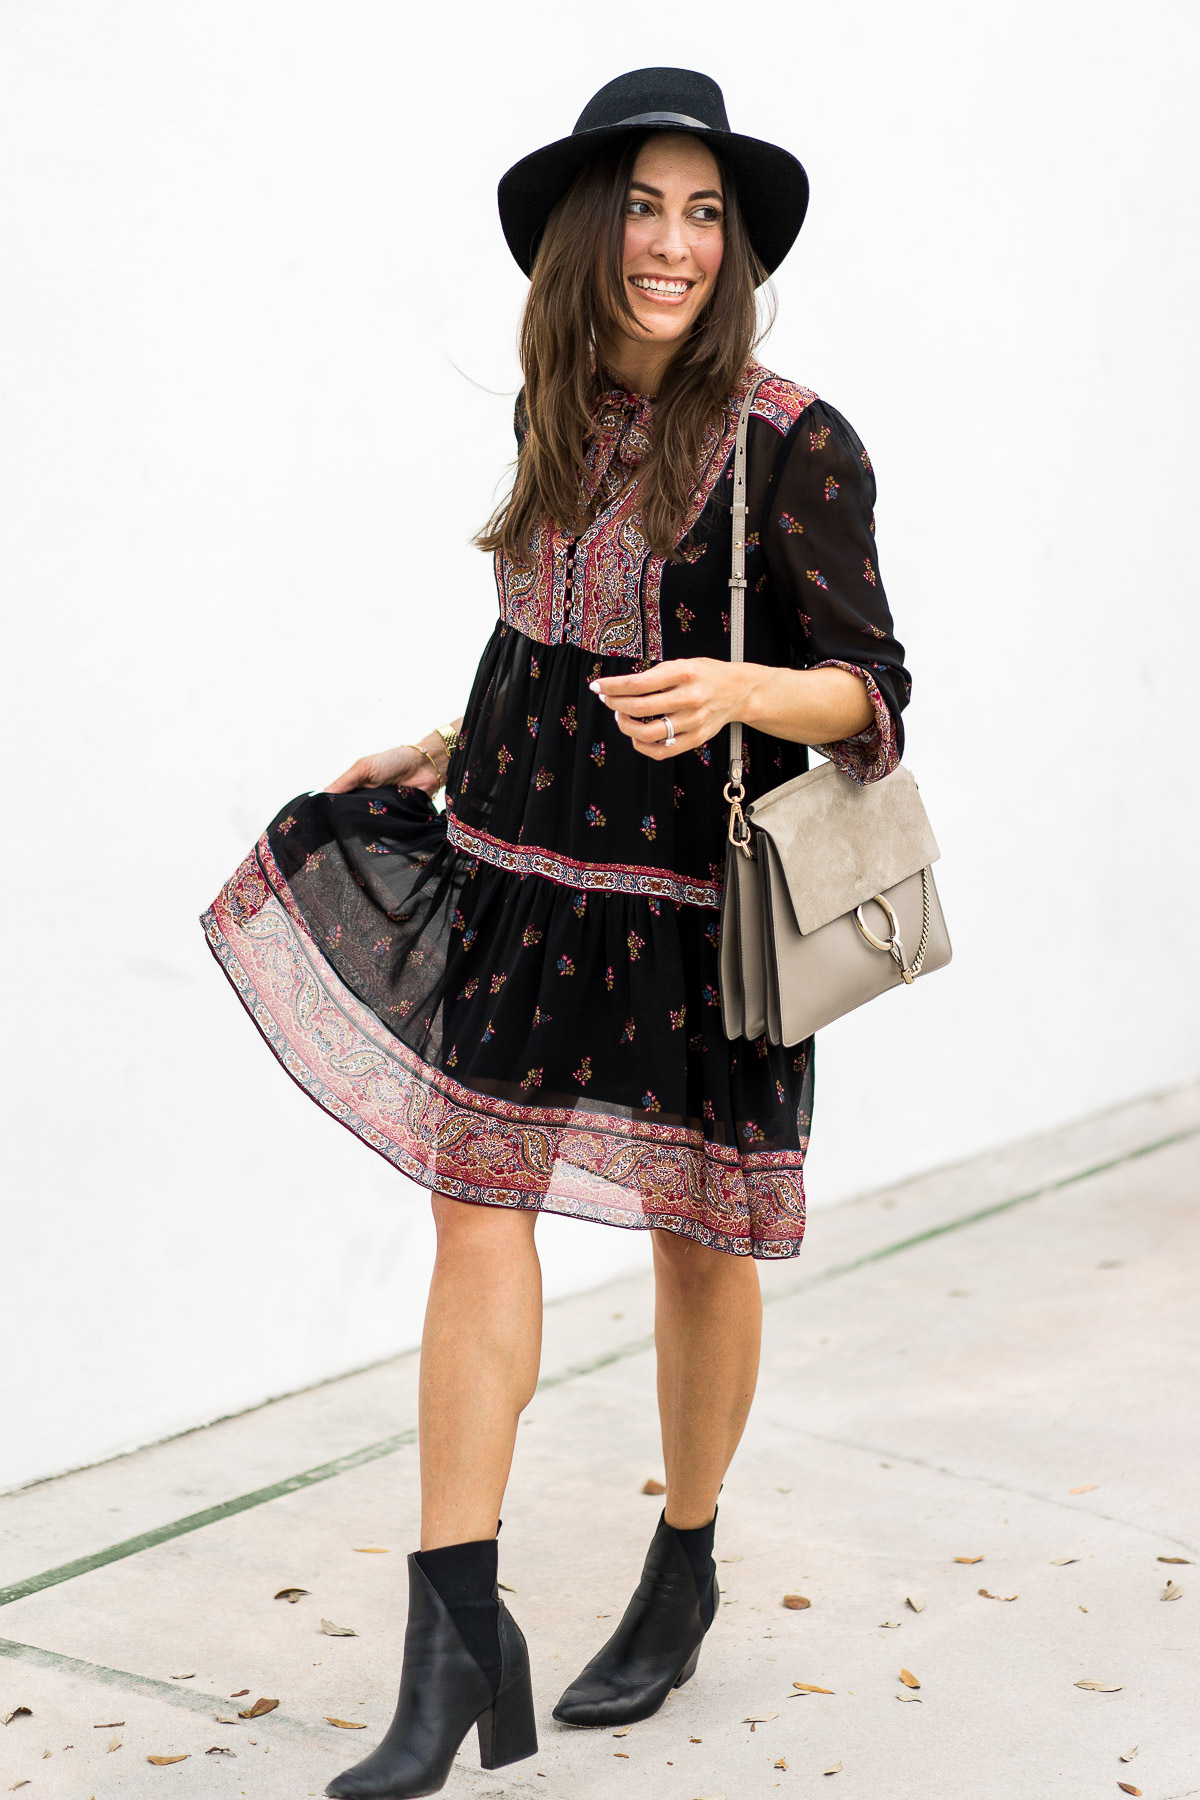 Fashion blogger Amanda from A Glam Lifestyle wears Joie Alpina dress with her Chloe Faye bag and ASKA Collection Troy booties